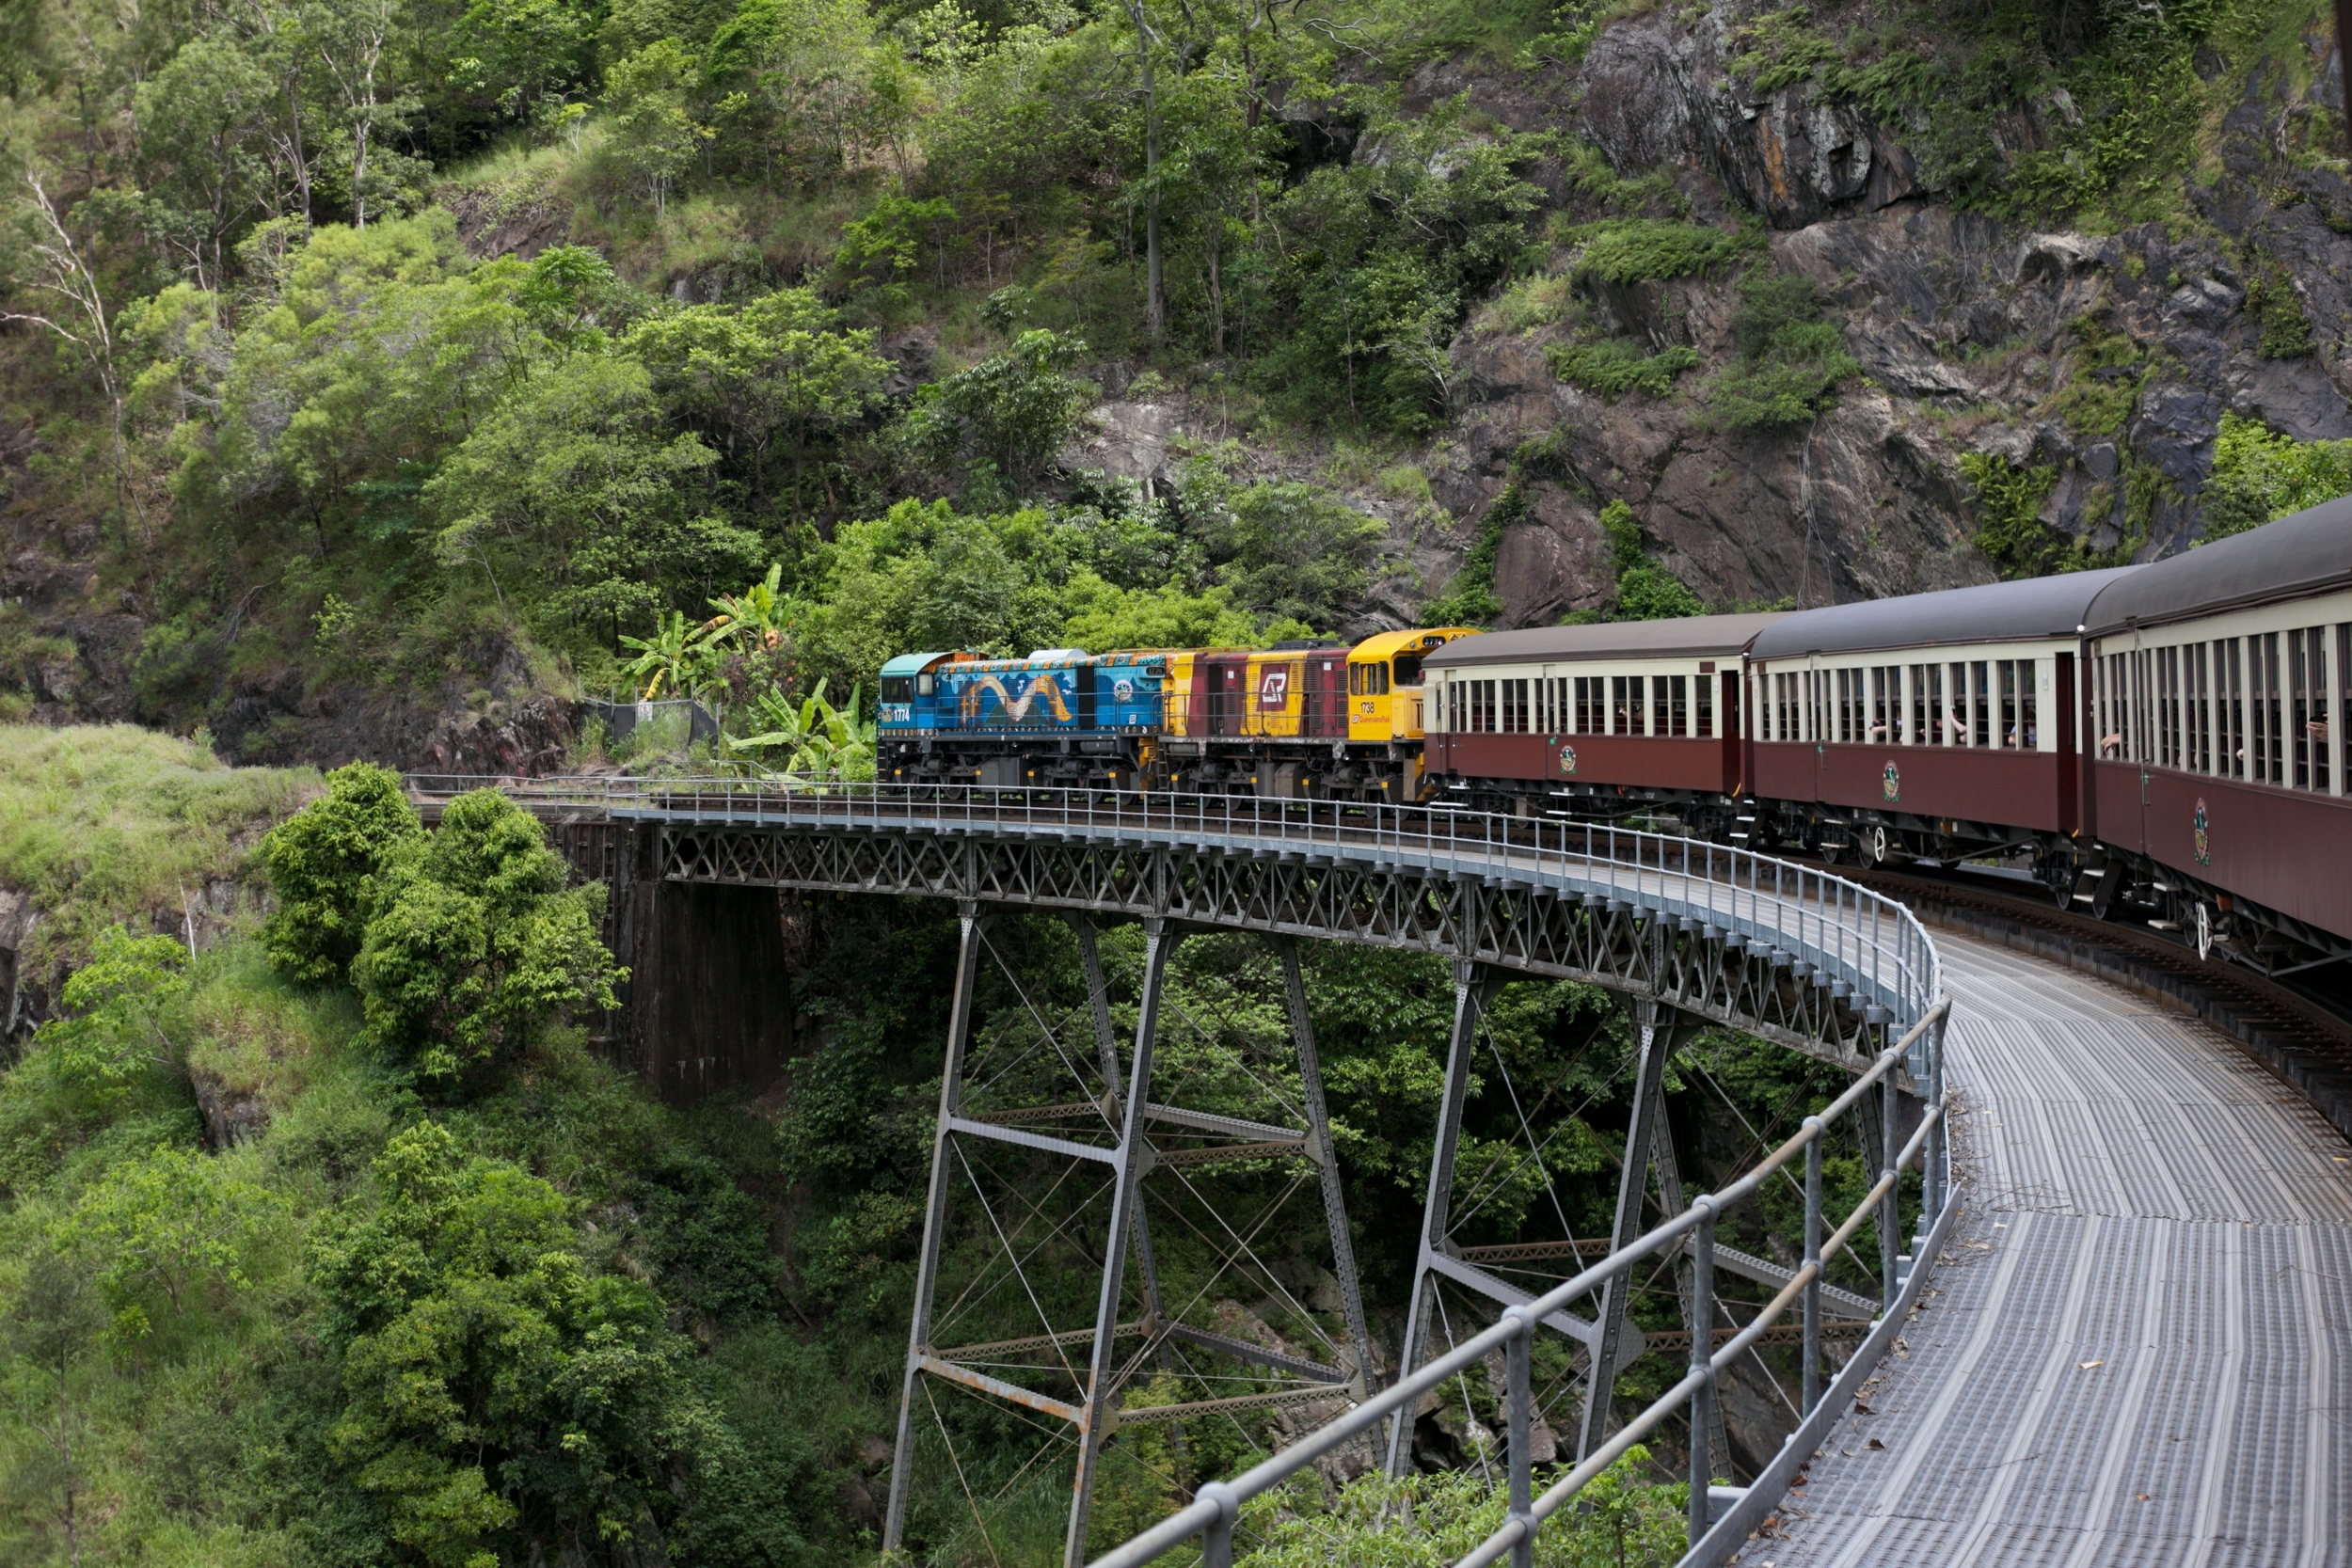 The Kuranda scenic train driving through the rainforest.